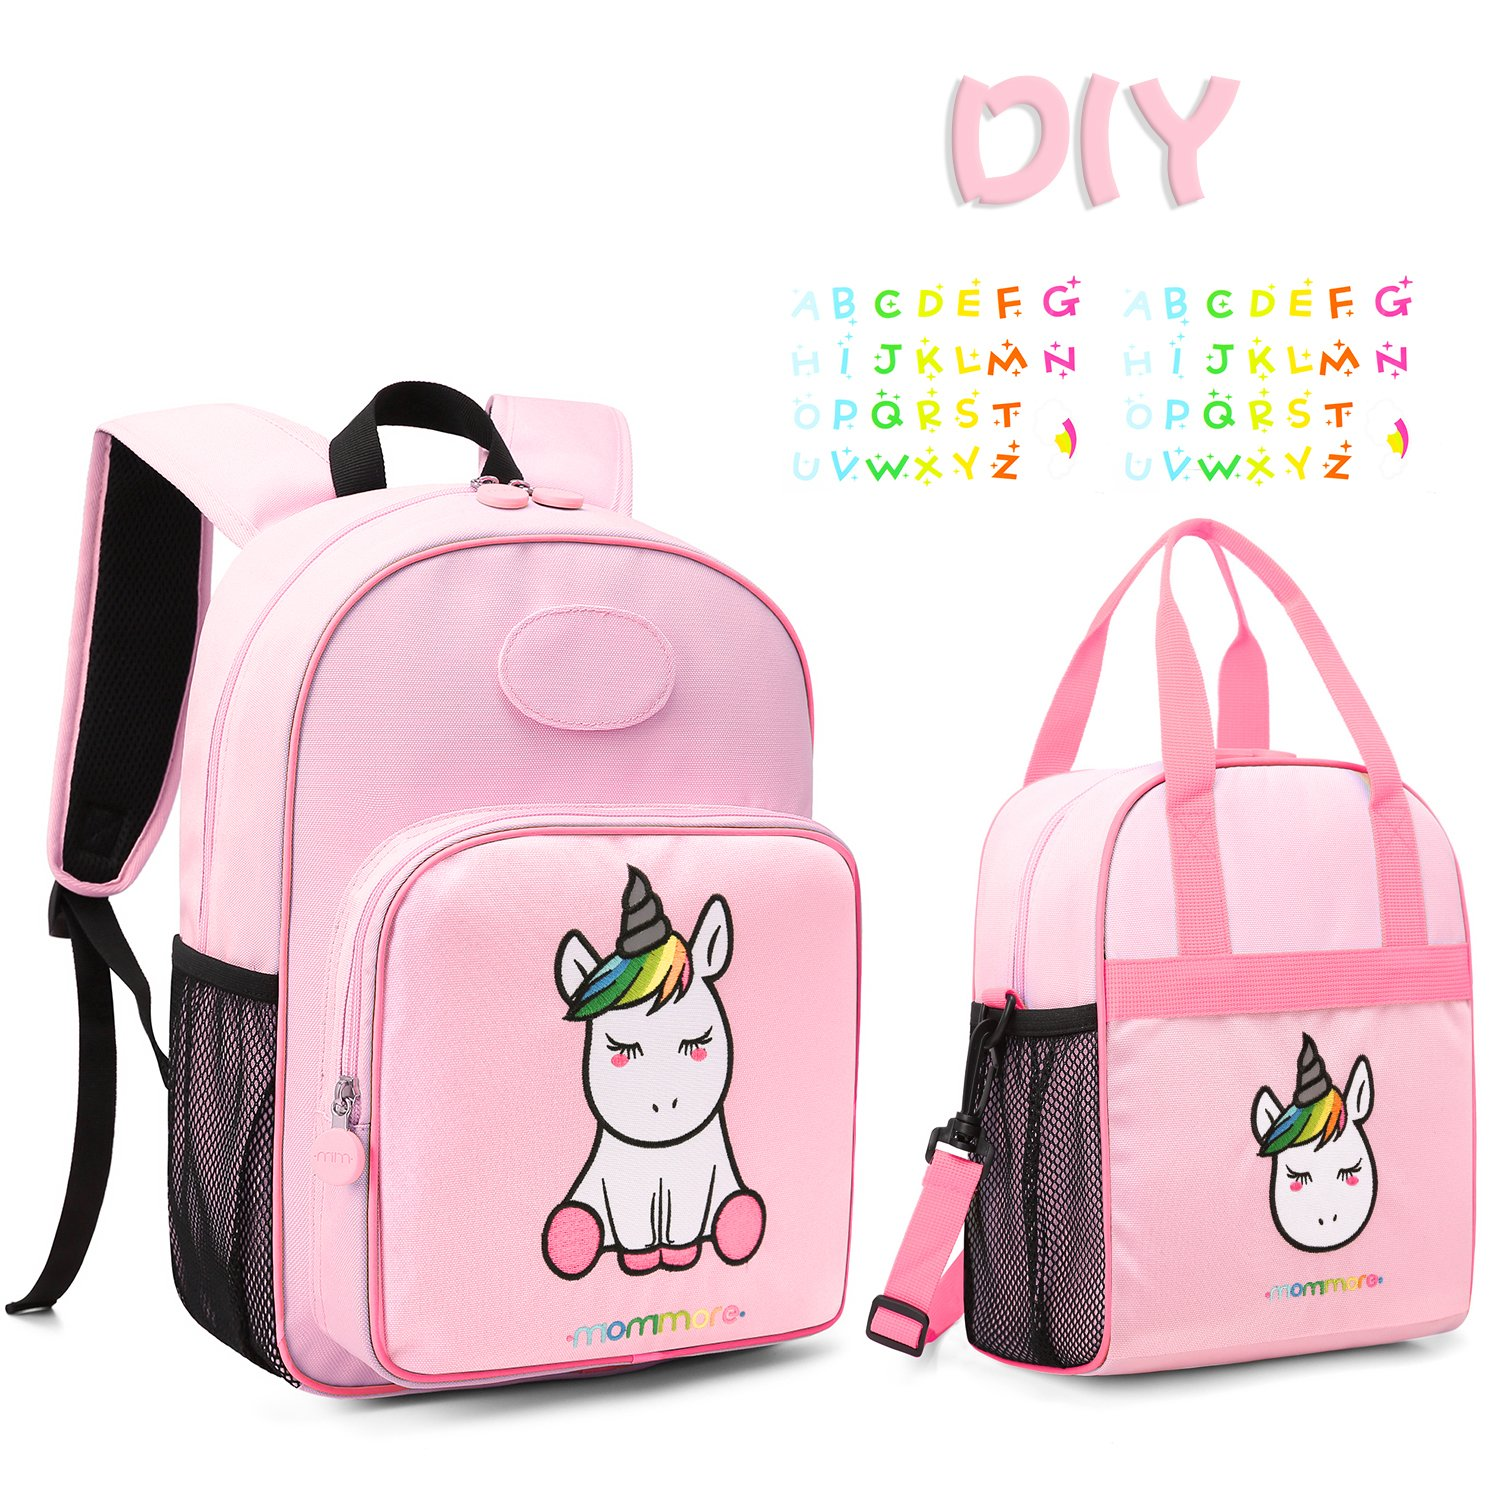 MOMMORE Cute Unicorn Kids Backpack Preschool Toddler Backpack for 3-7 Years Old Girls, Pink